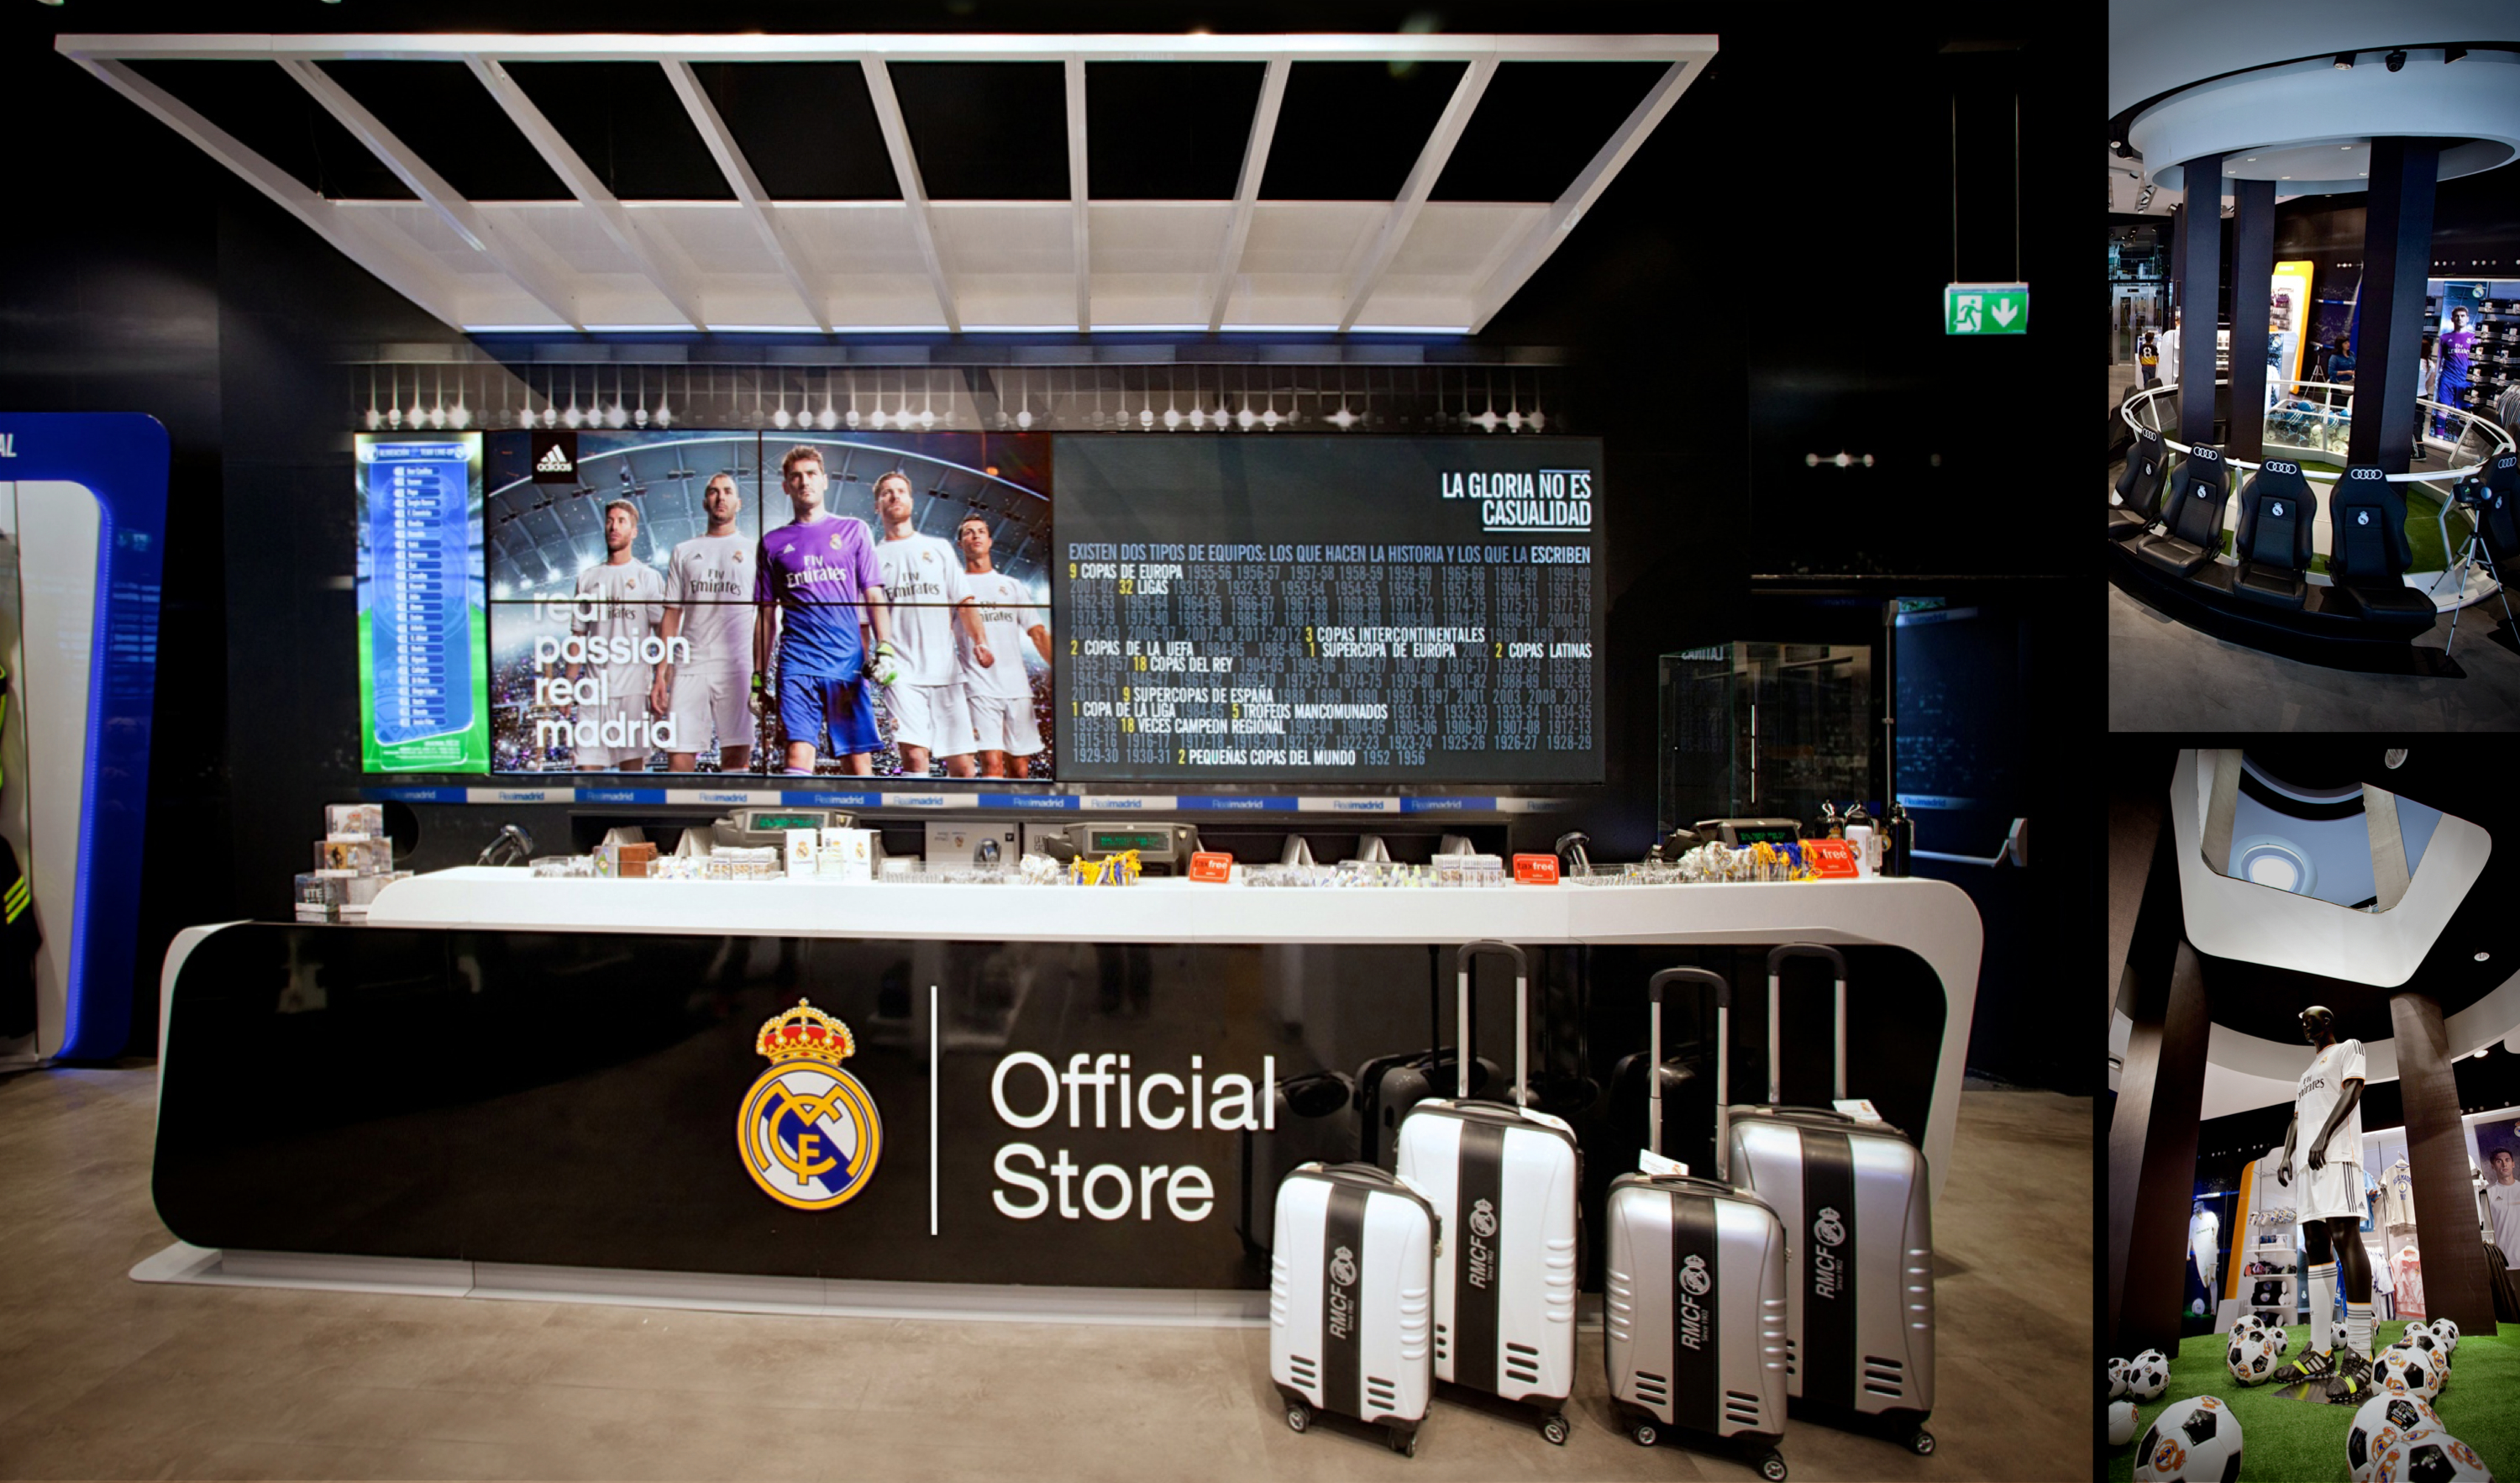 01-sanzpont-arquitectura-real-madrid-official-store-gran-via-31.jpg